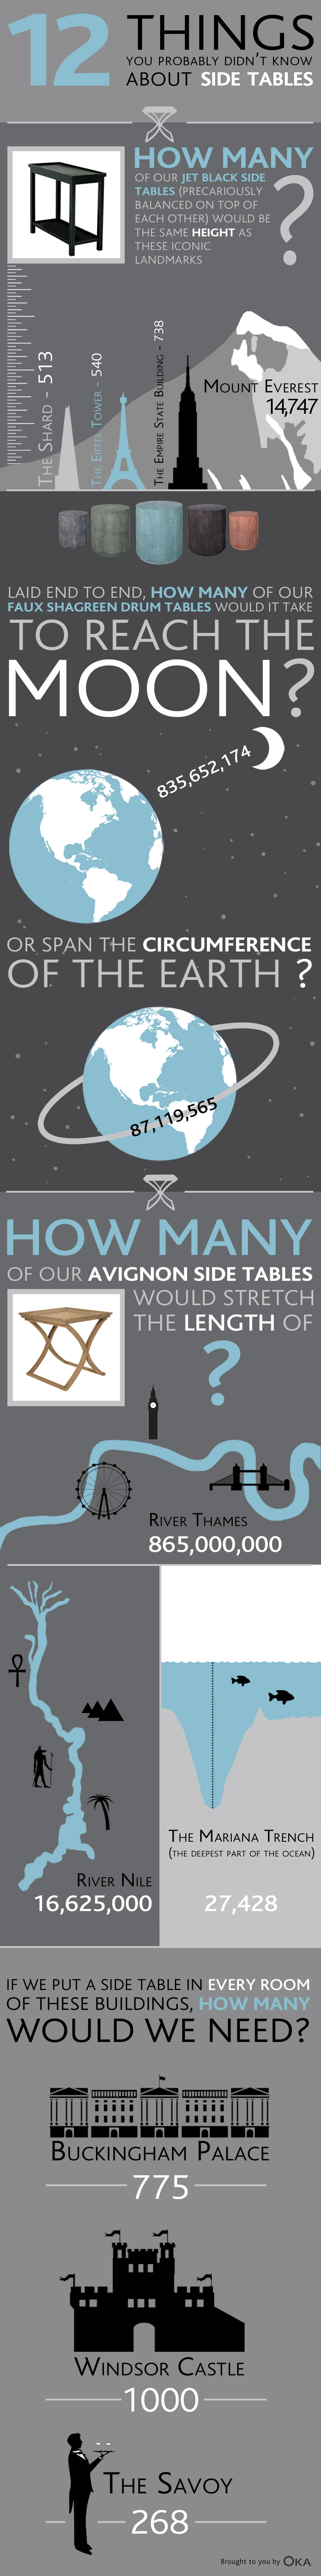 things-you-probably-did-not-know-about-side-tables-infographic